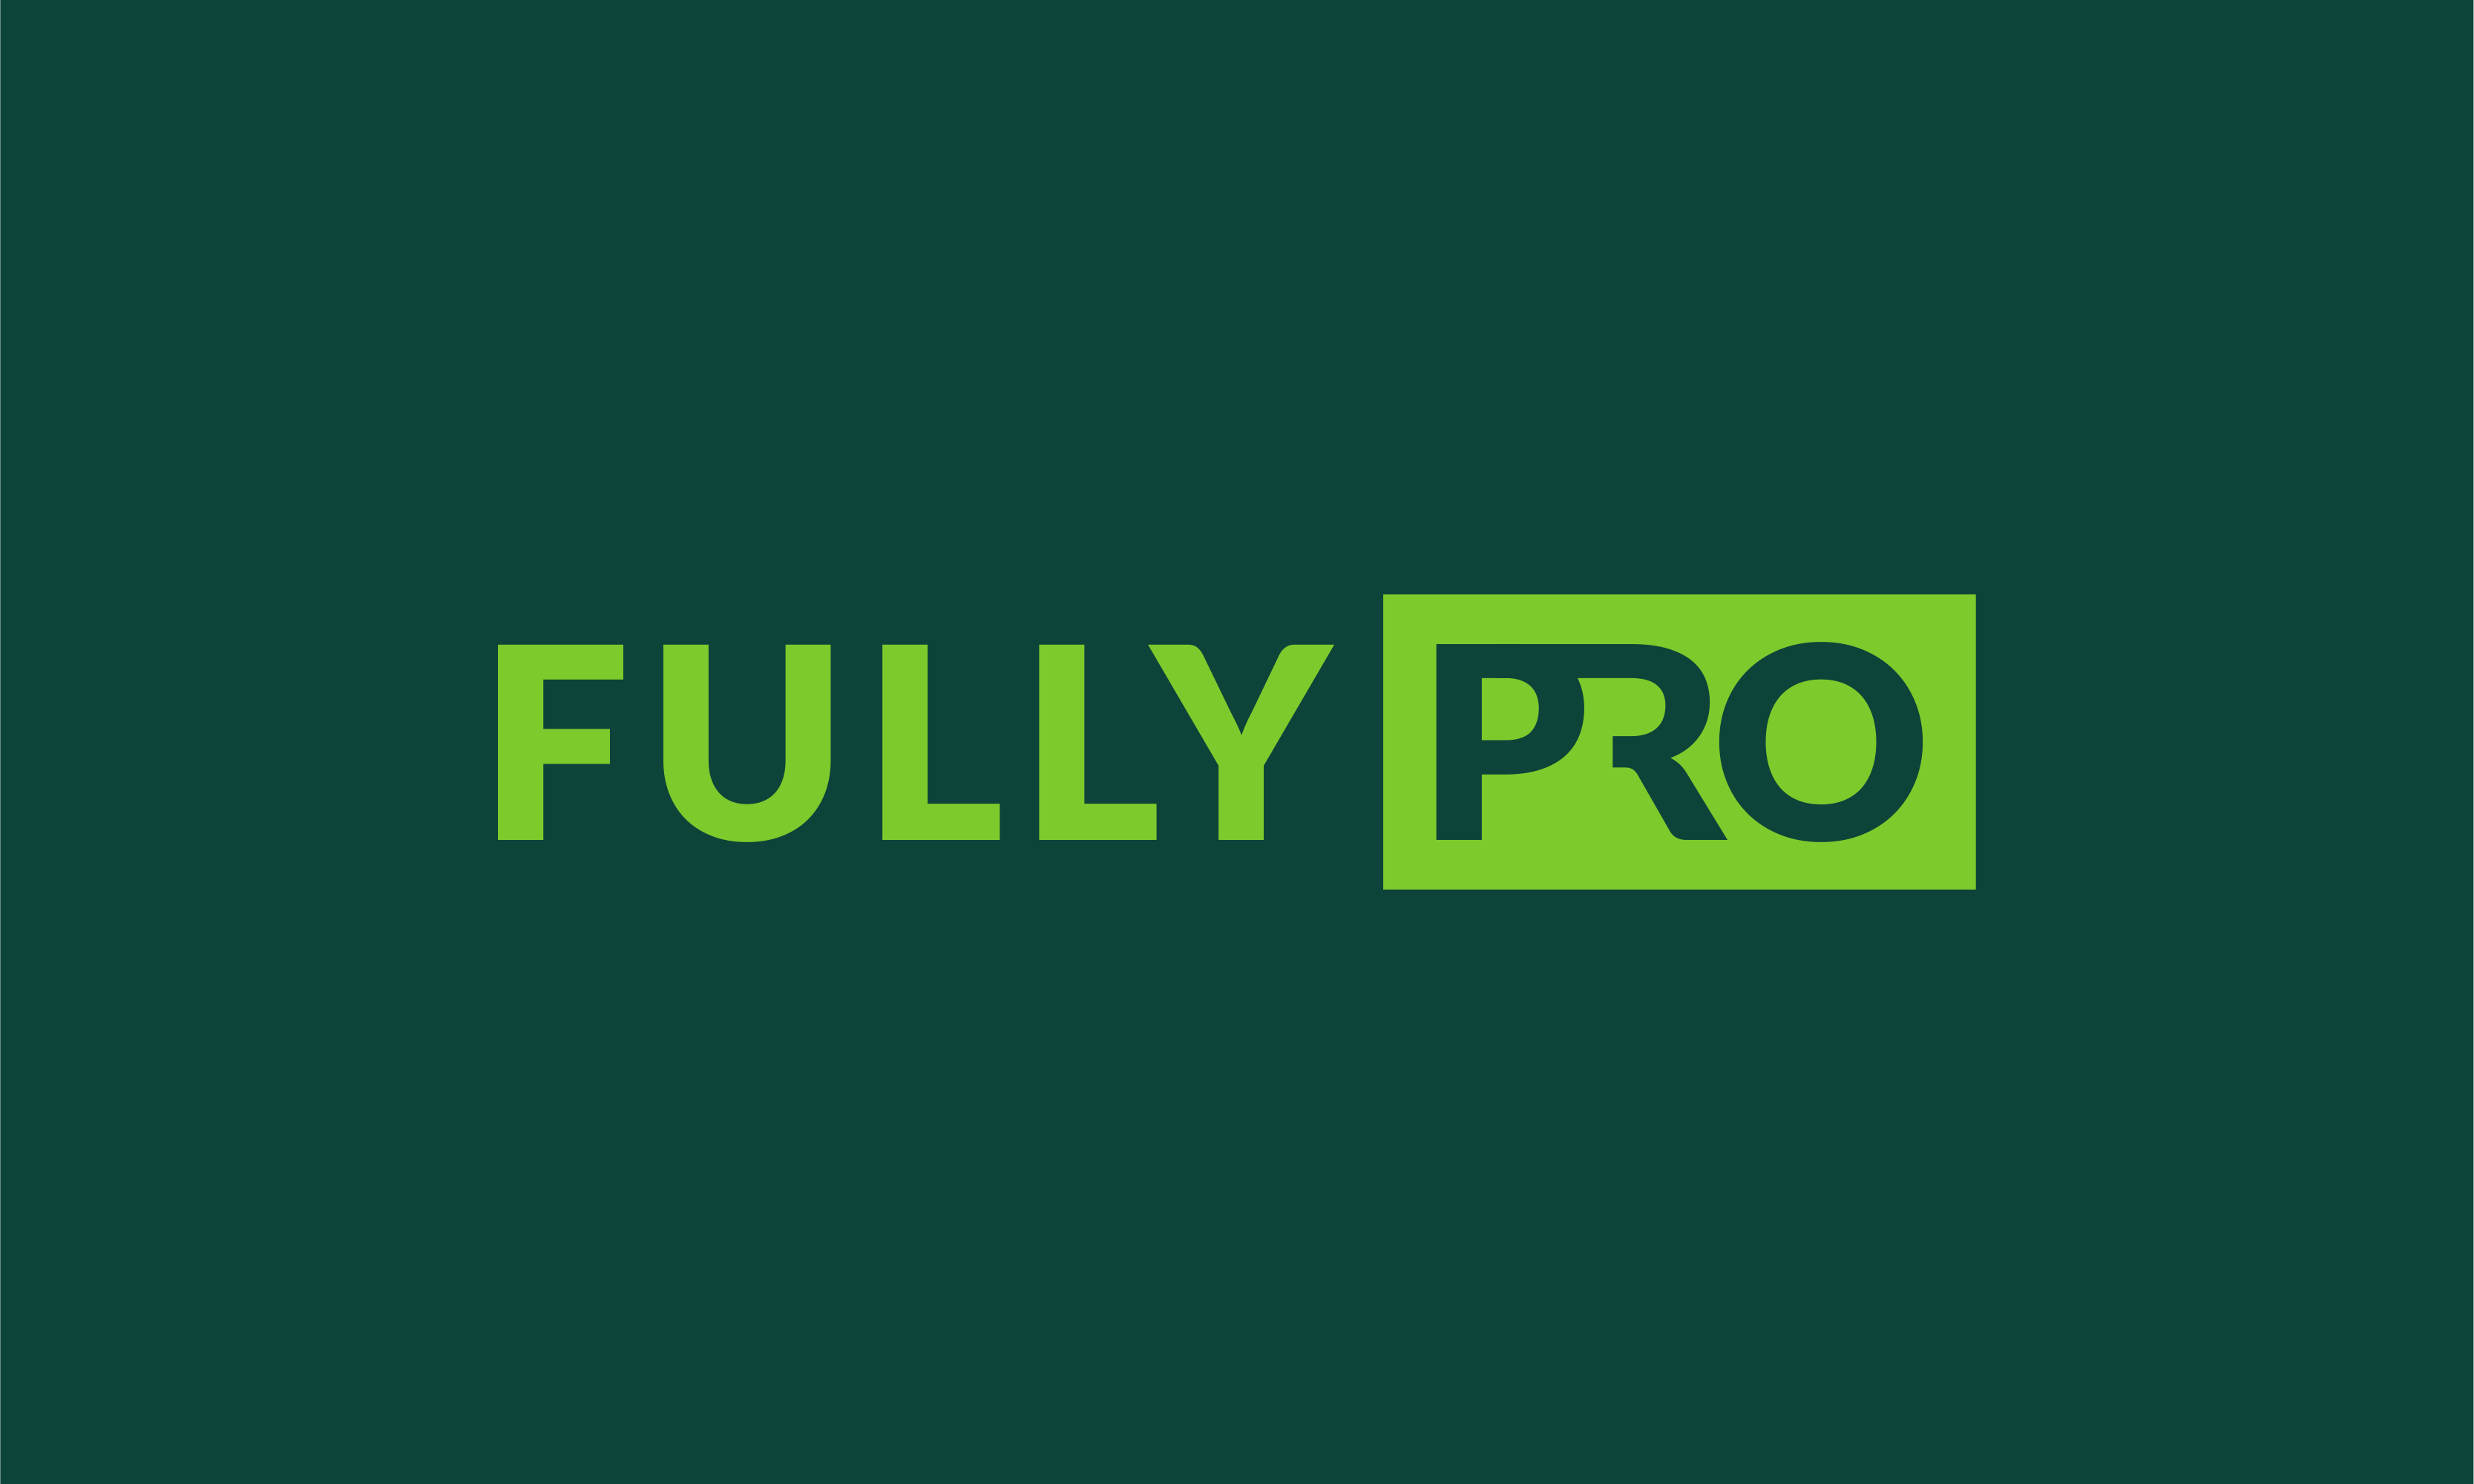 Fullypro